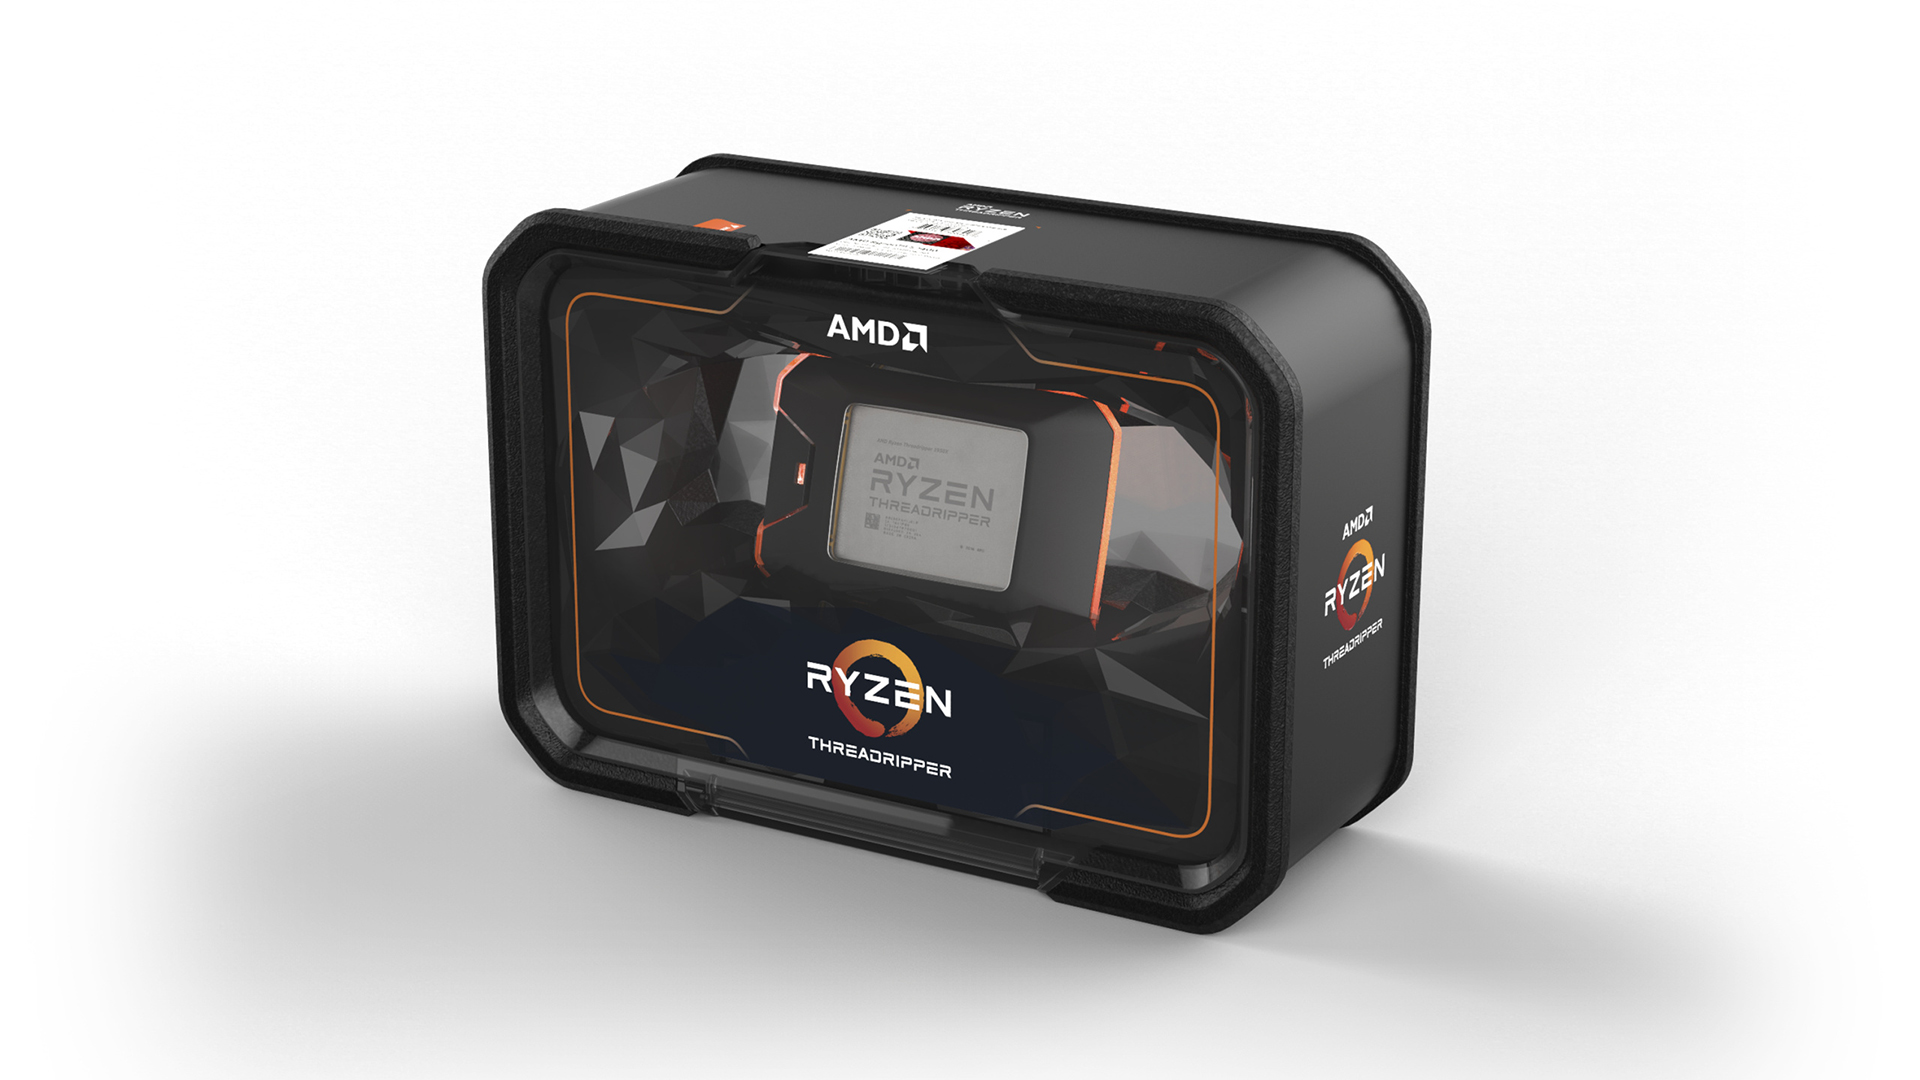 AMD's 32-core Threadripper 2990WX sets a remarkable CPU benchmark